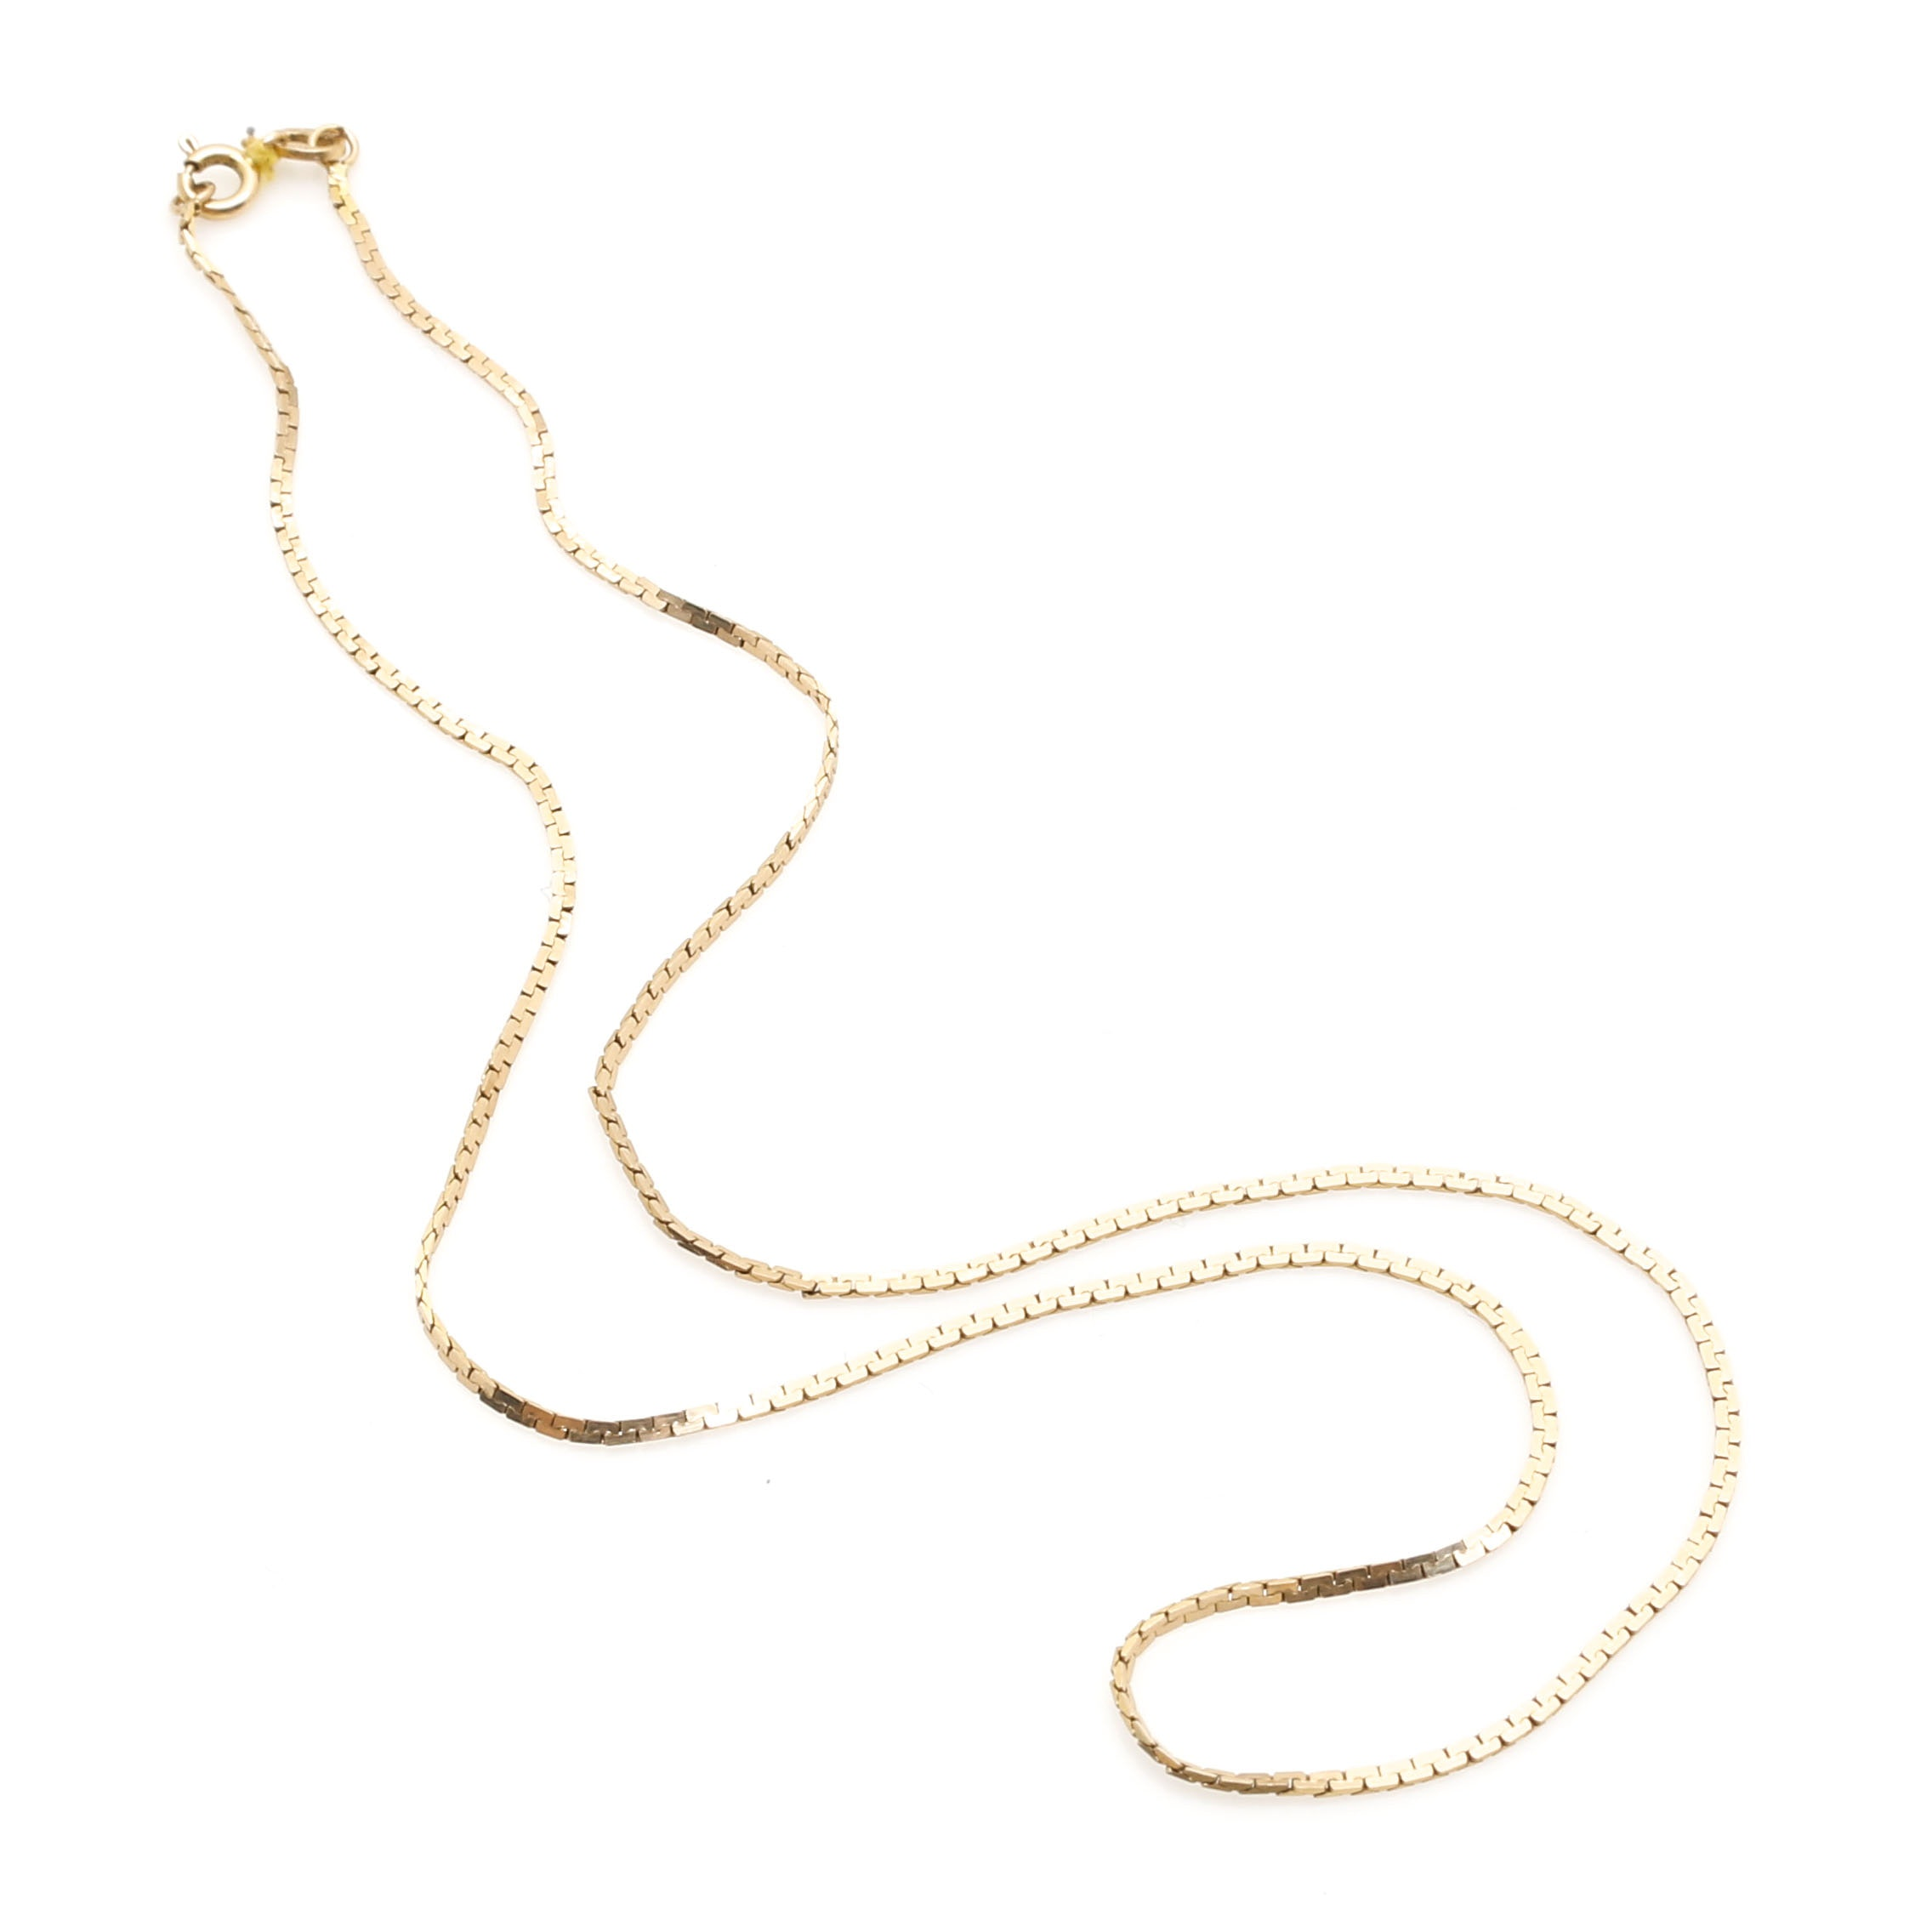 14K Yellow Gold C-Link Chain Necklace